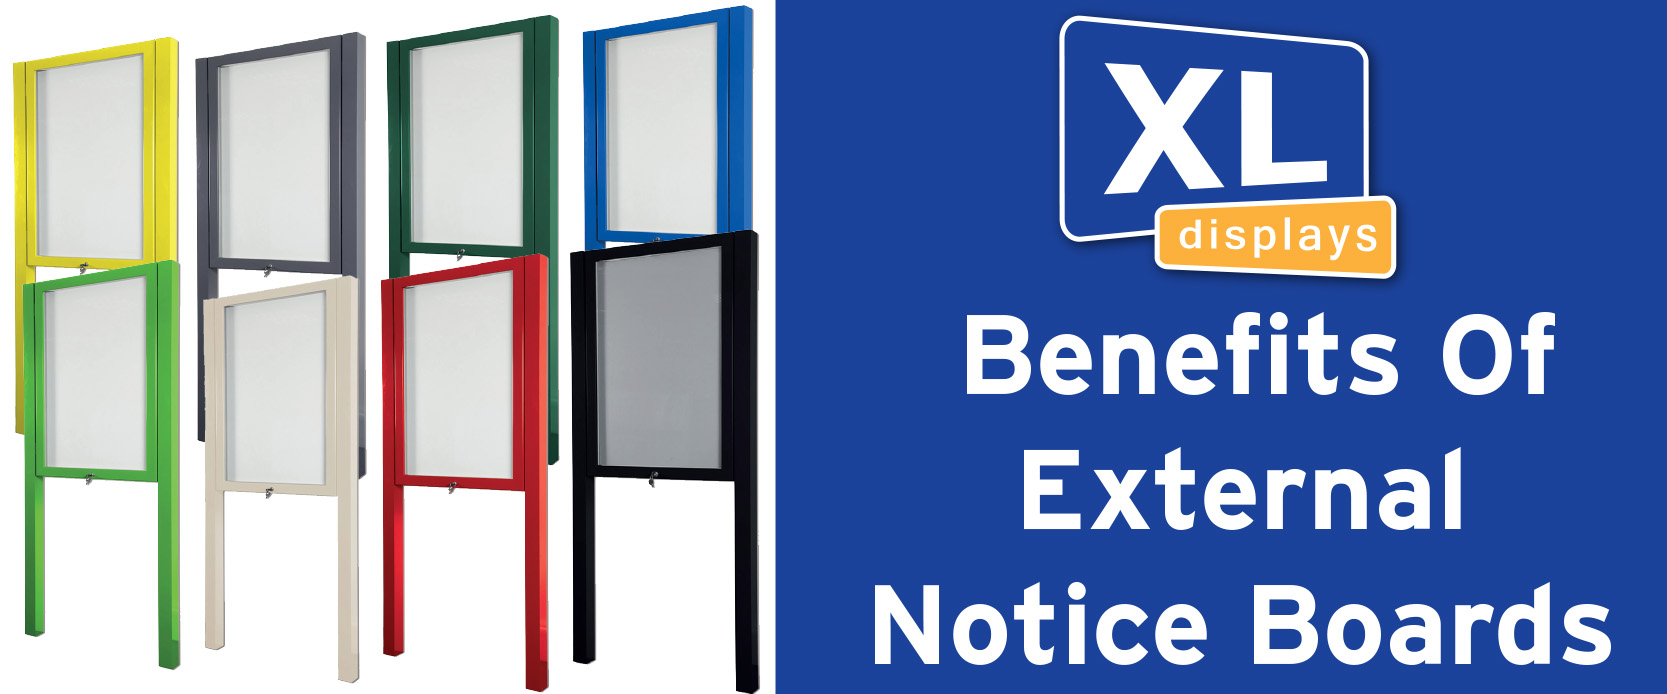 Benefits Of External Notice Boards